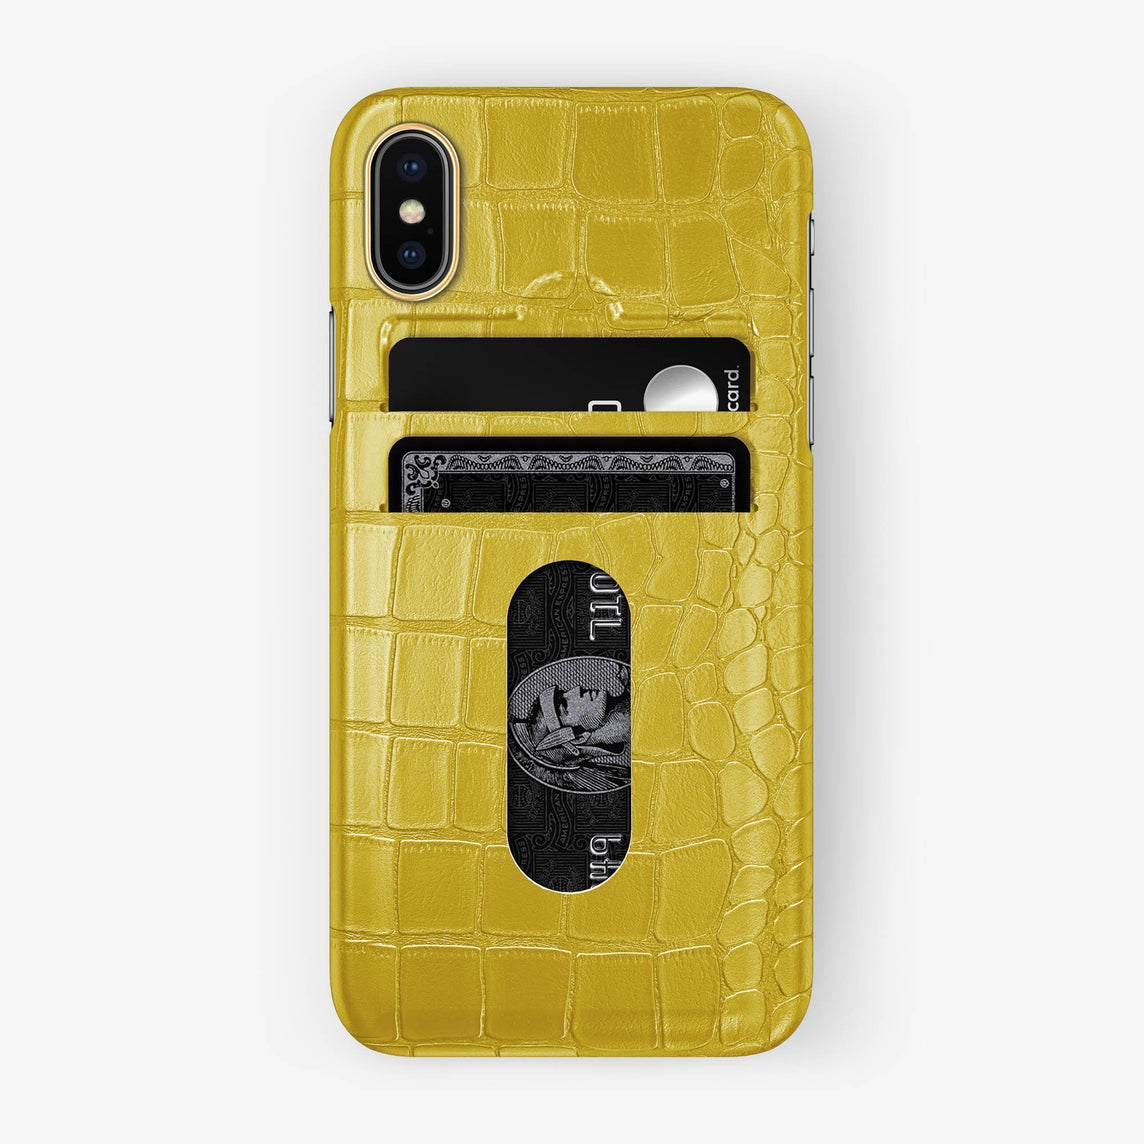 Alligator Card Holder Case iPhone Xs Max | Yellow - Yellow Gold